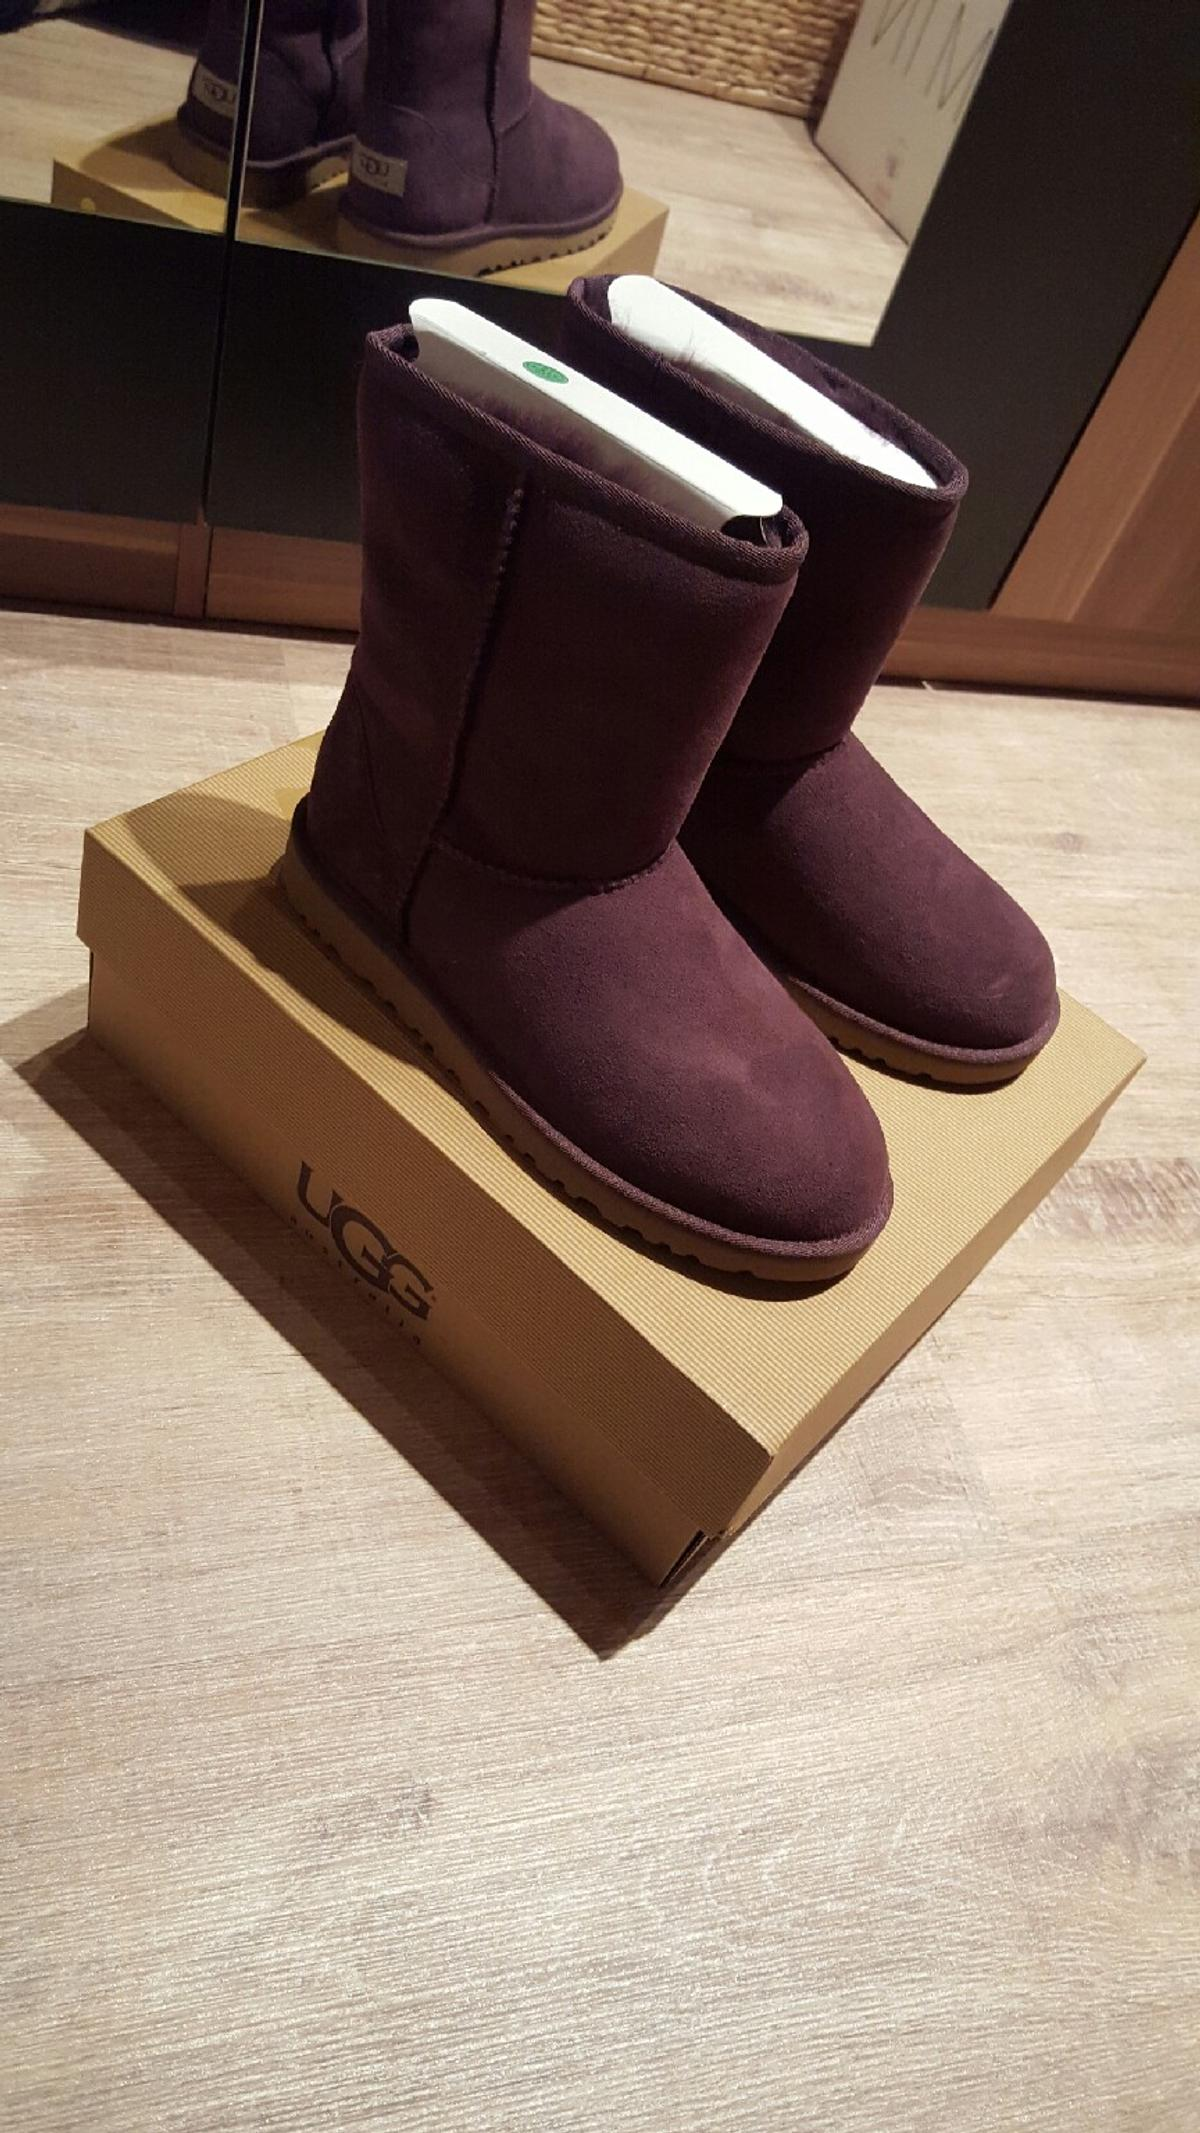 Boots In Ugg Neu Classic Ovp Lila Gr38 Beere 83607 5L34ARj